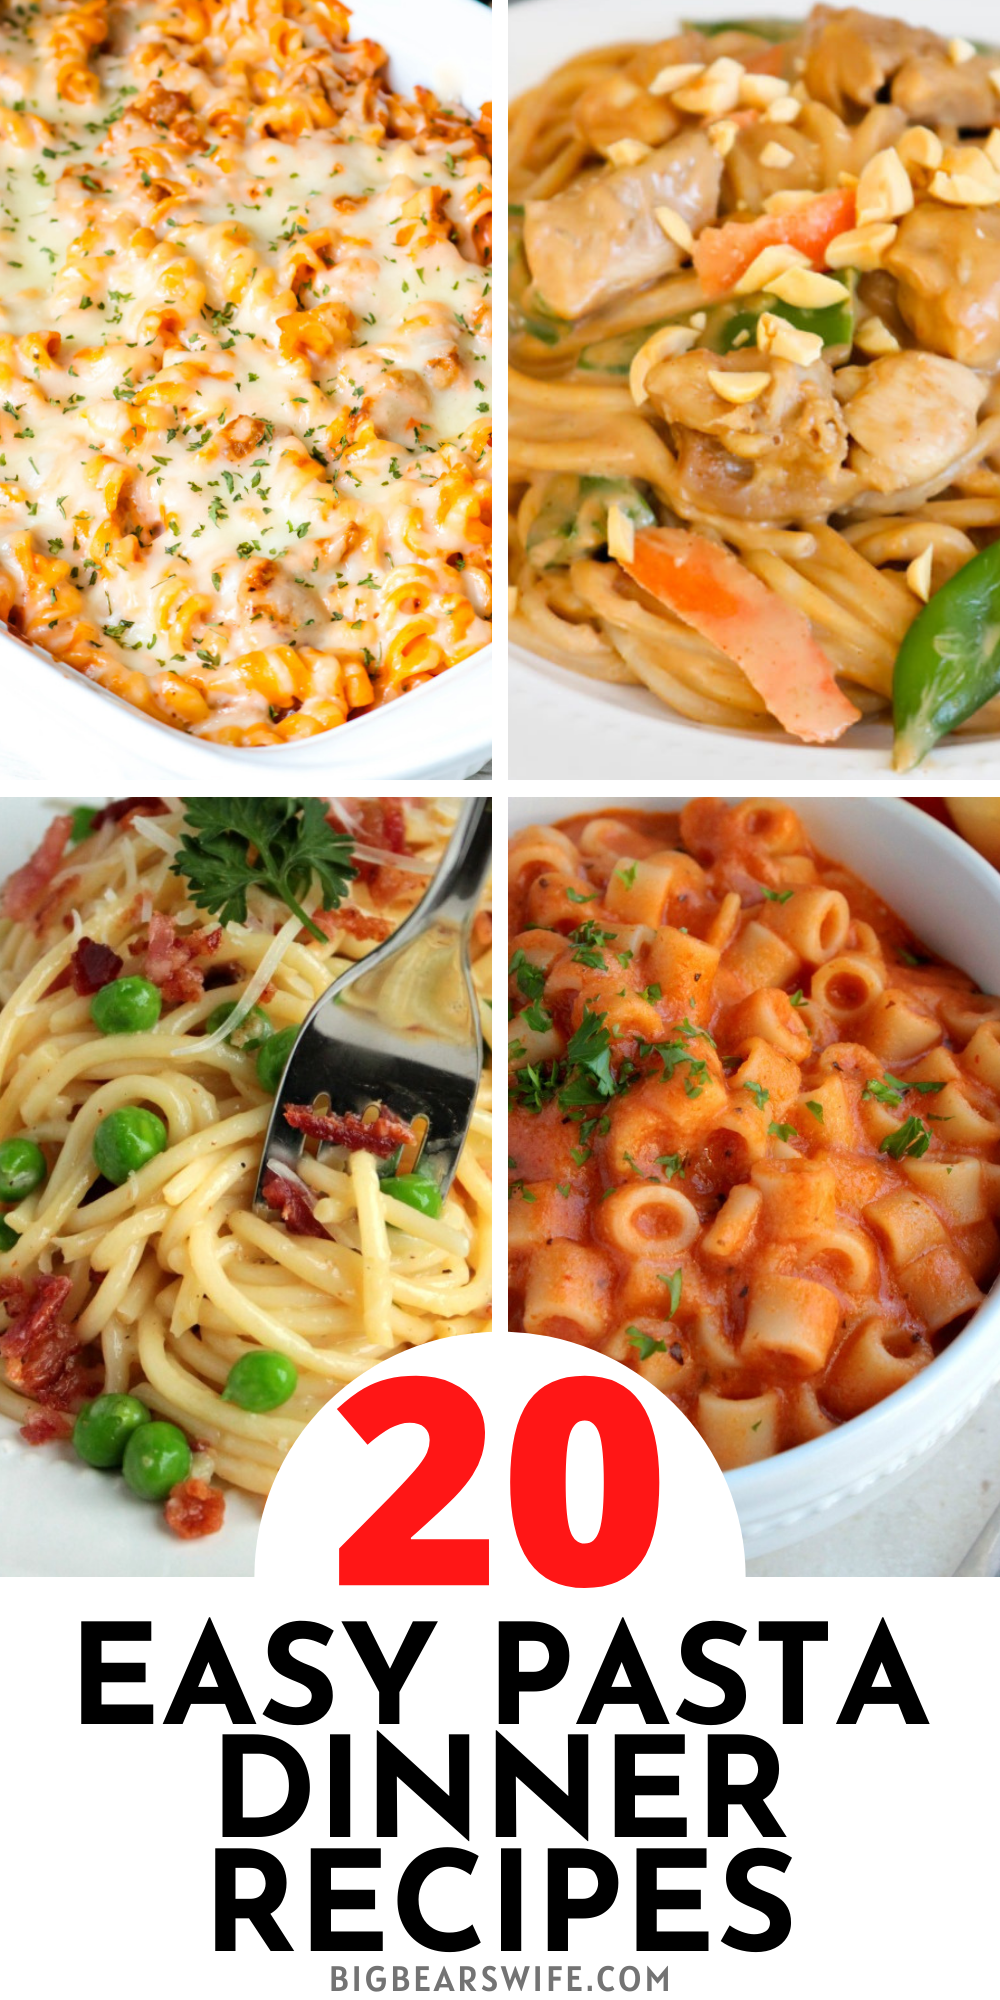 20 Easy Pasta Dinner Recipes - Here you'll find 20 Easy Pasta Dinner Recipes that are perfect for weekday dinners and perfect for feeding your family! These quick and easy pasta recipes are some of our favorite family pasta dinner ideas!